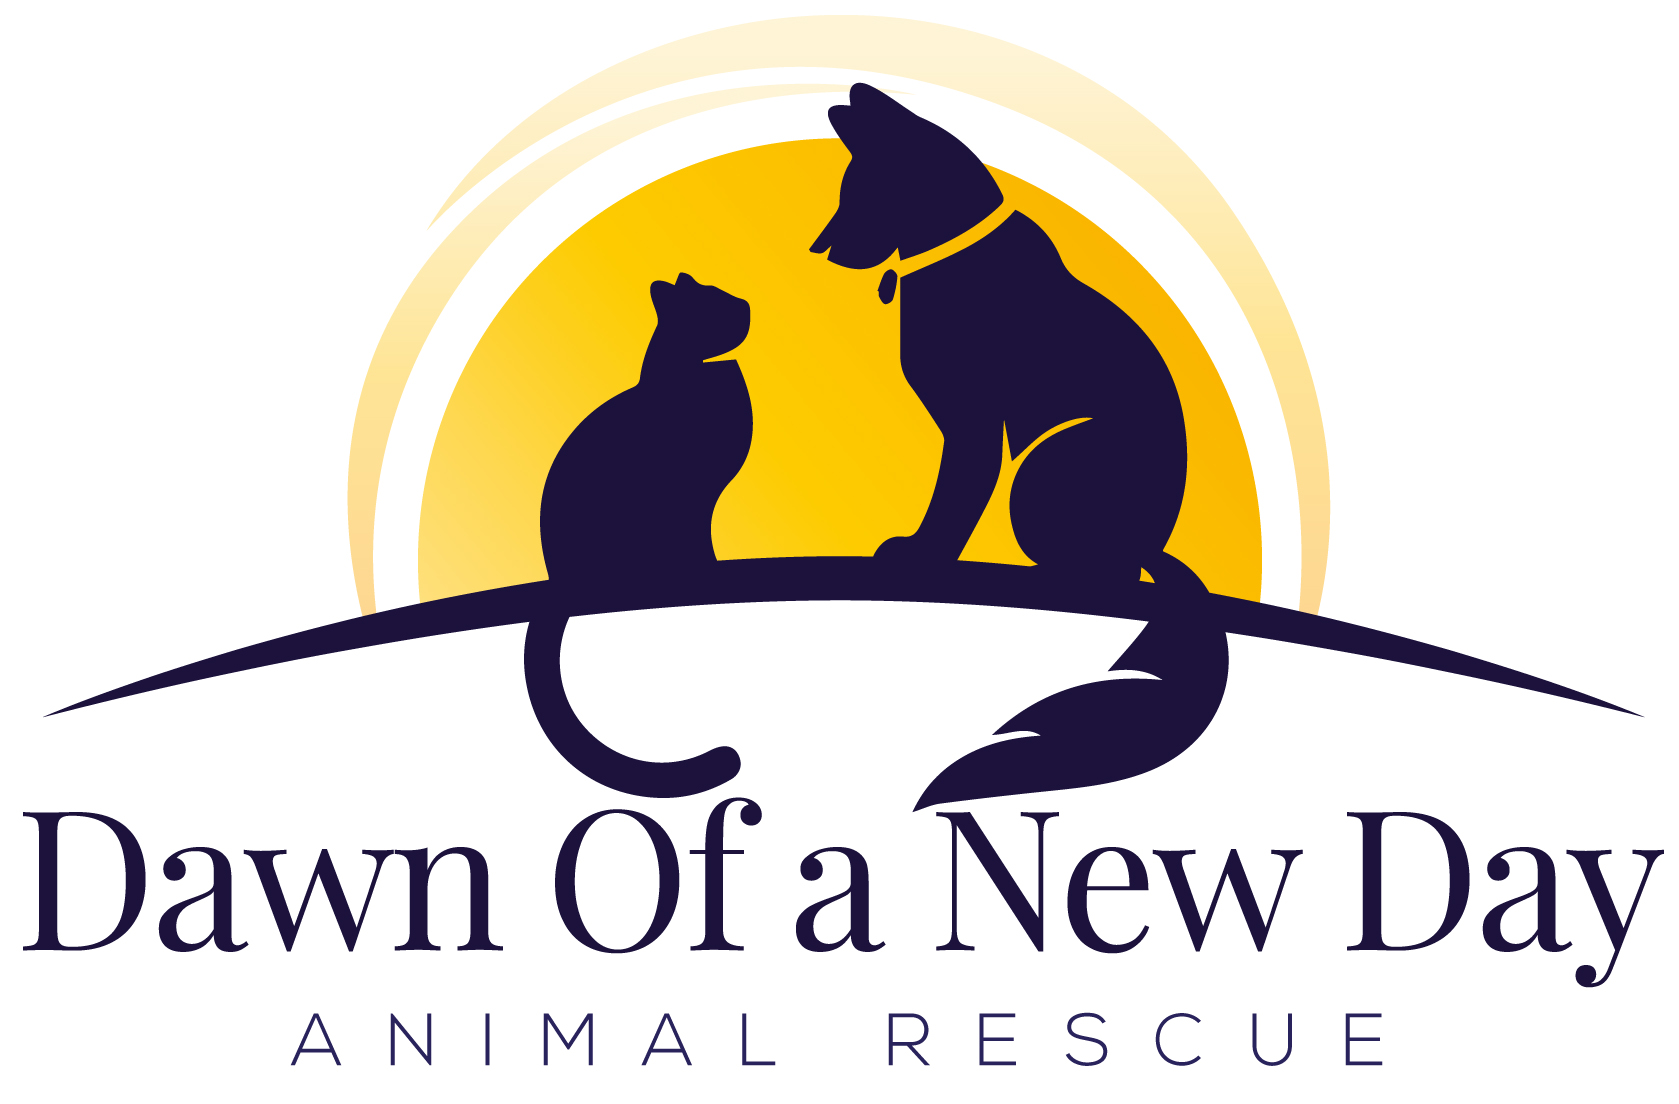 Dawn Of A New Day Animal Rescue